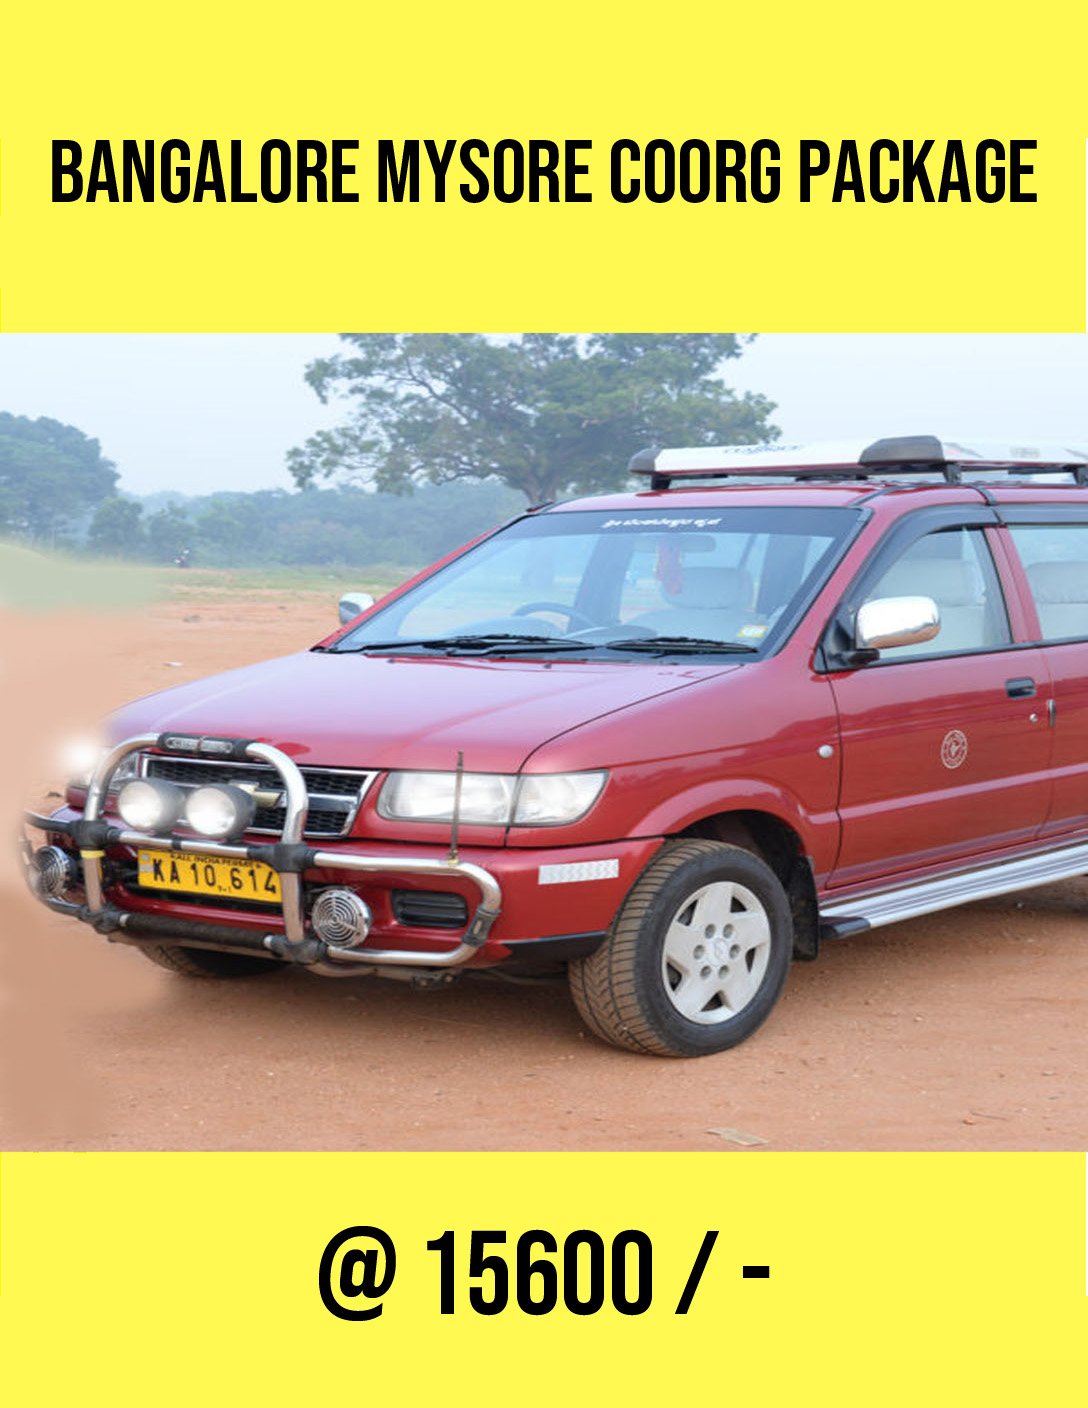 bangalore-mysore-coorg-package